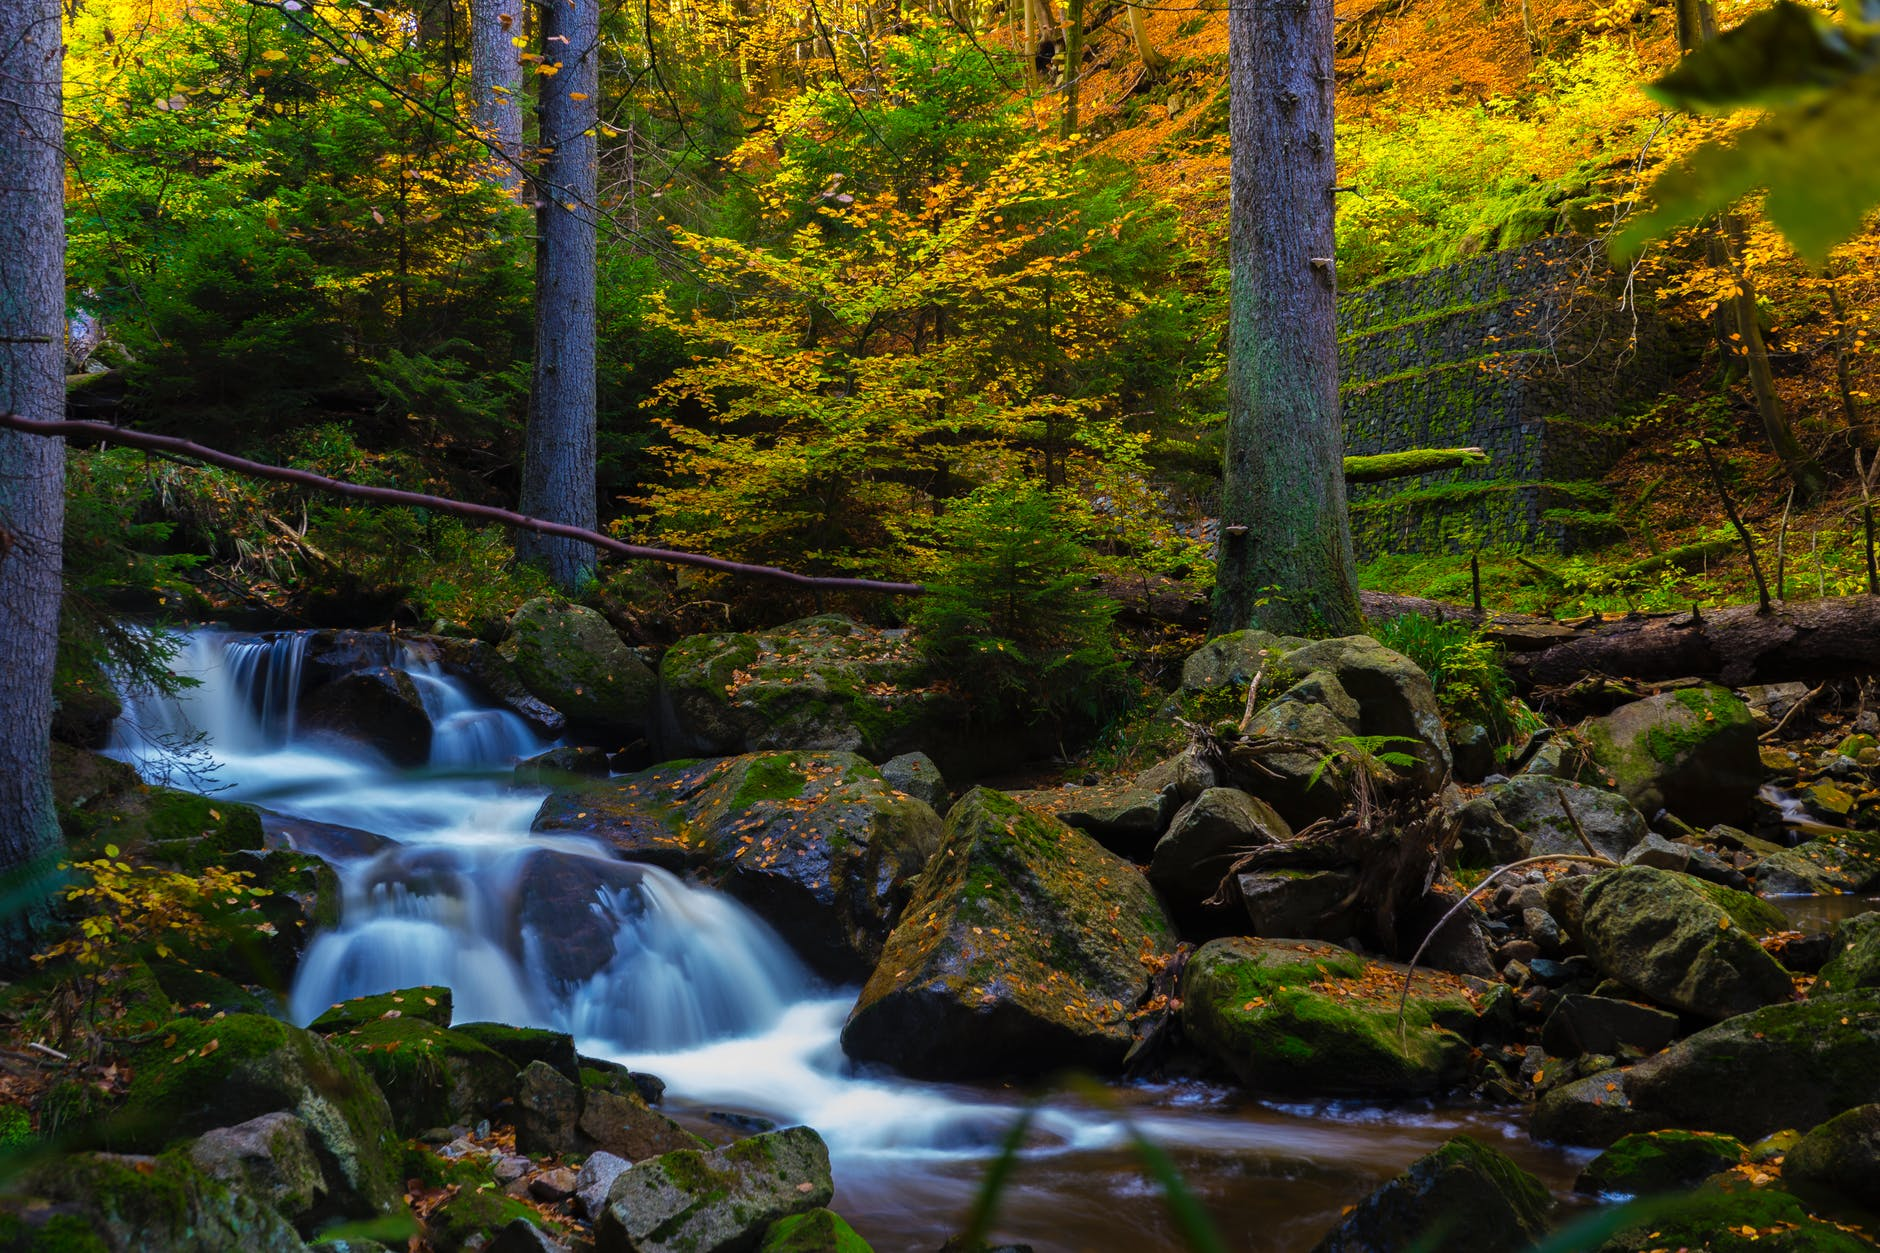 timelapse photography of falls near trees